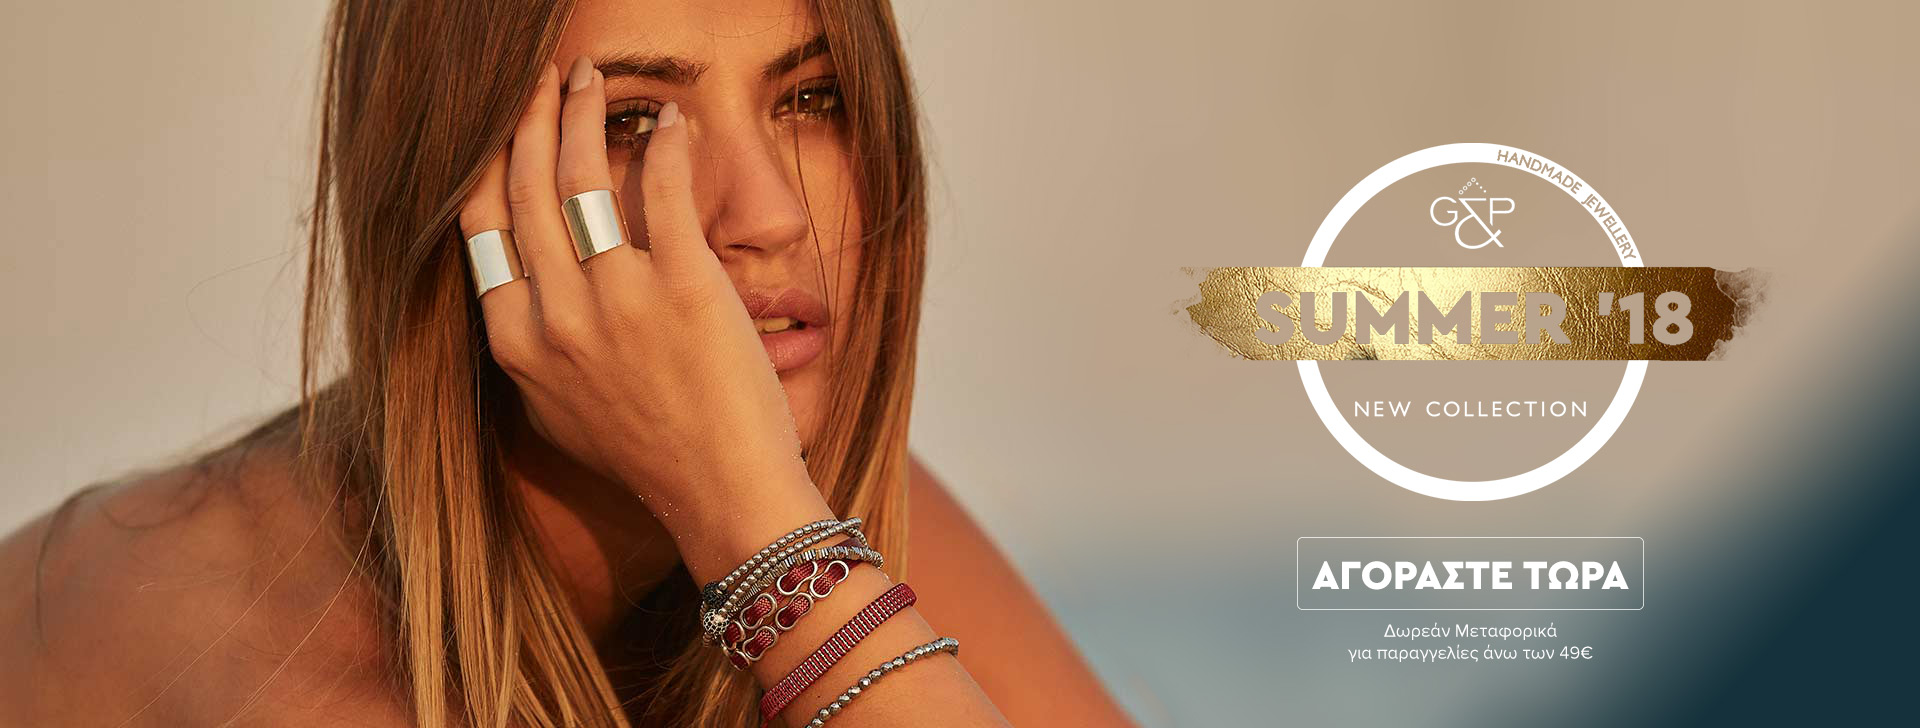 gp-jewellery-gr-summer-18-collection-2